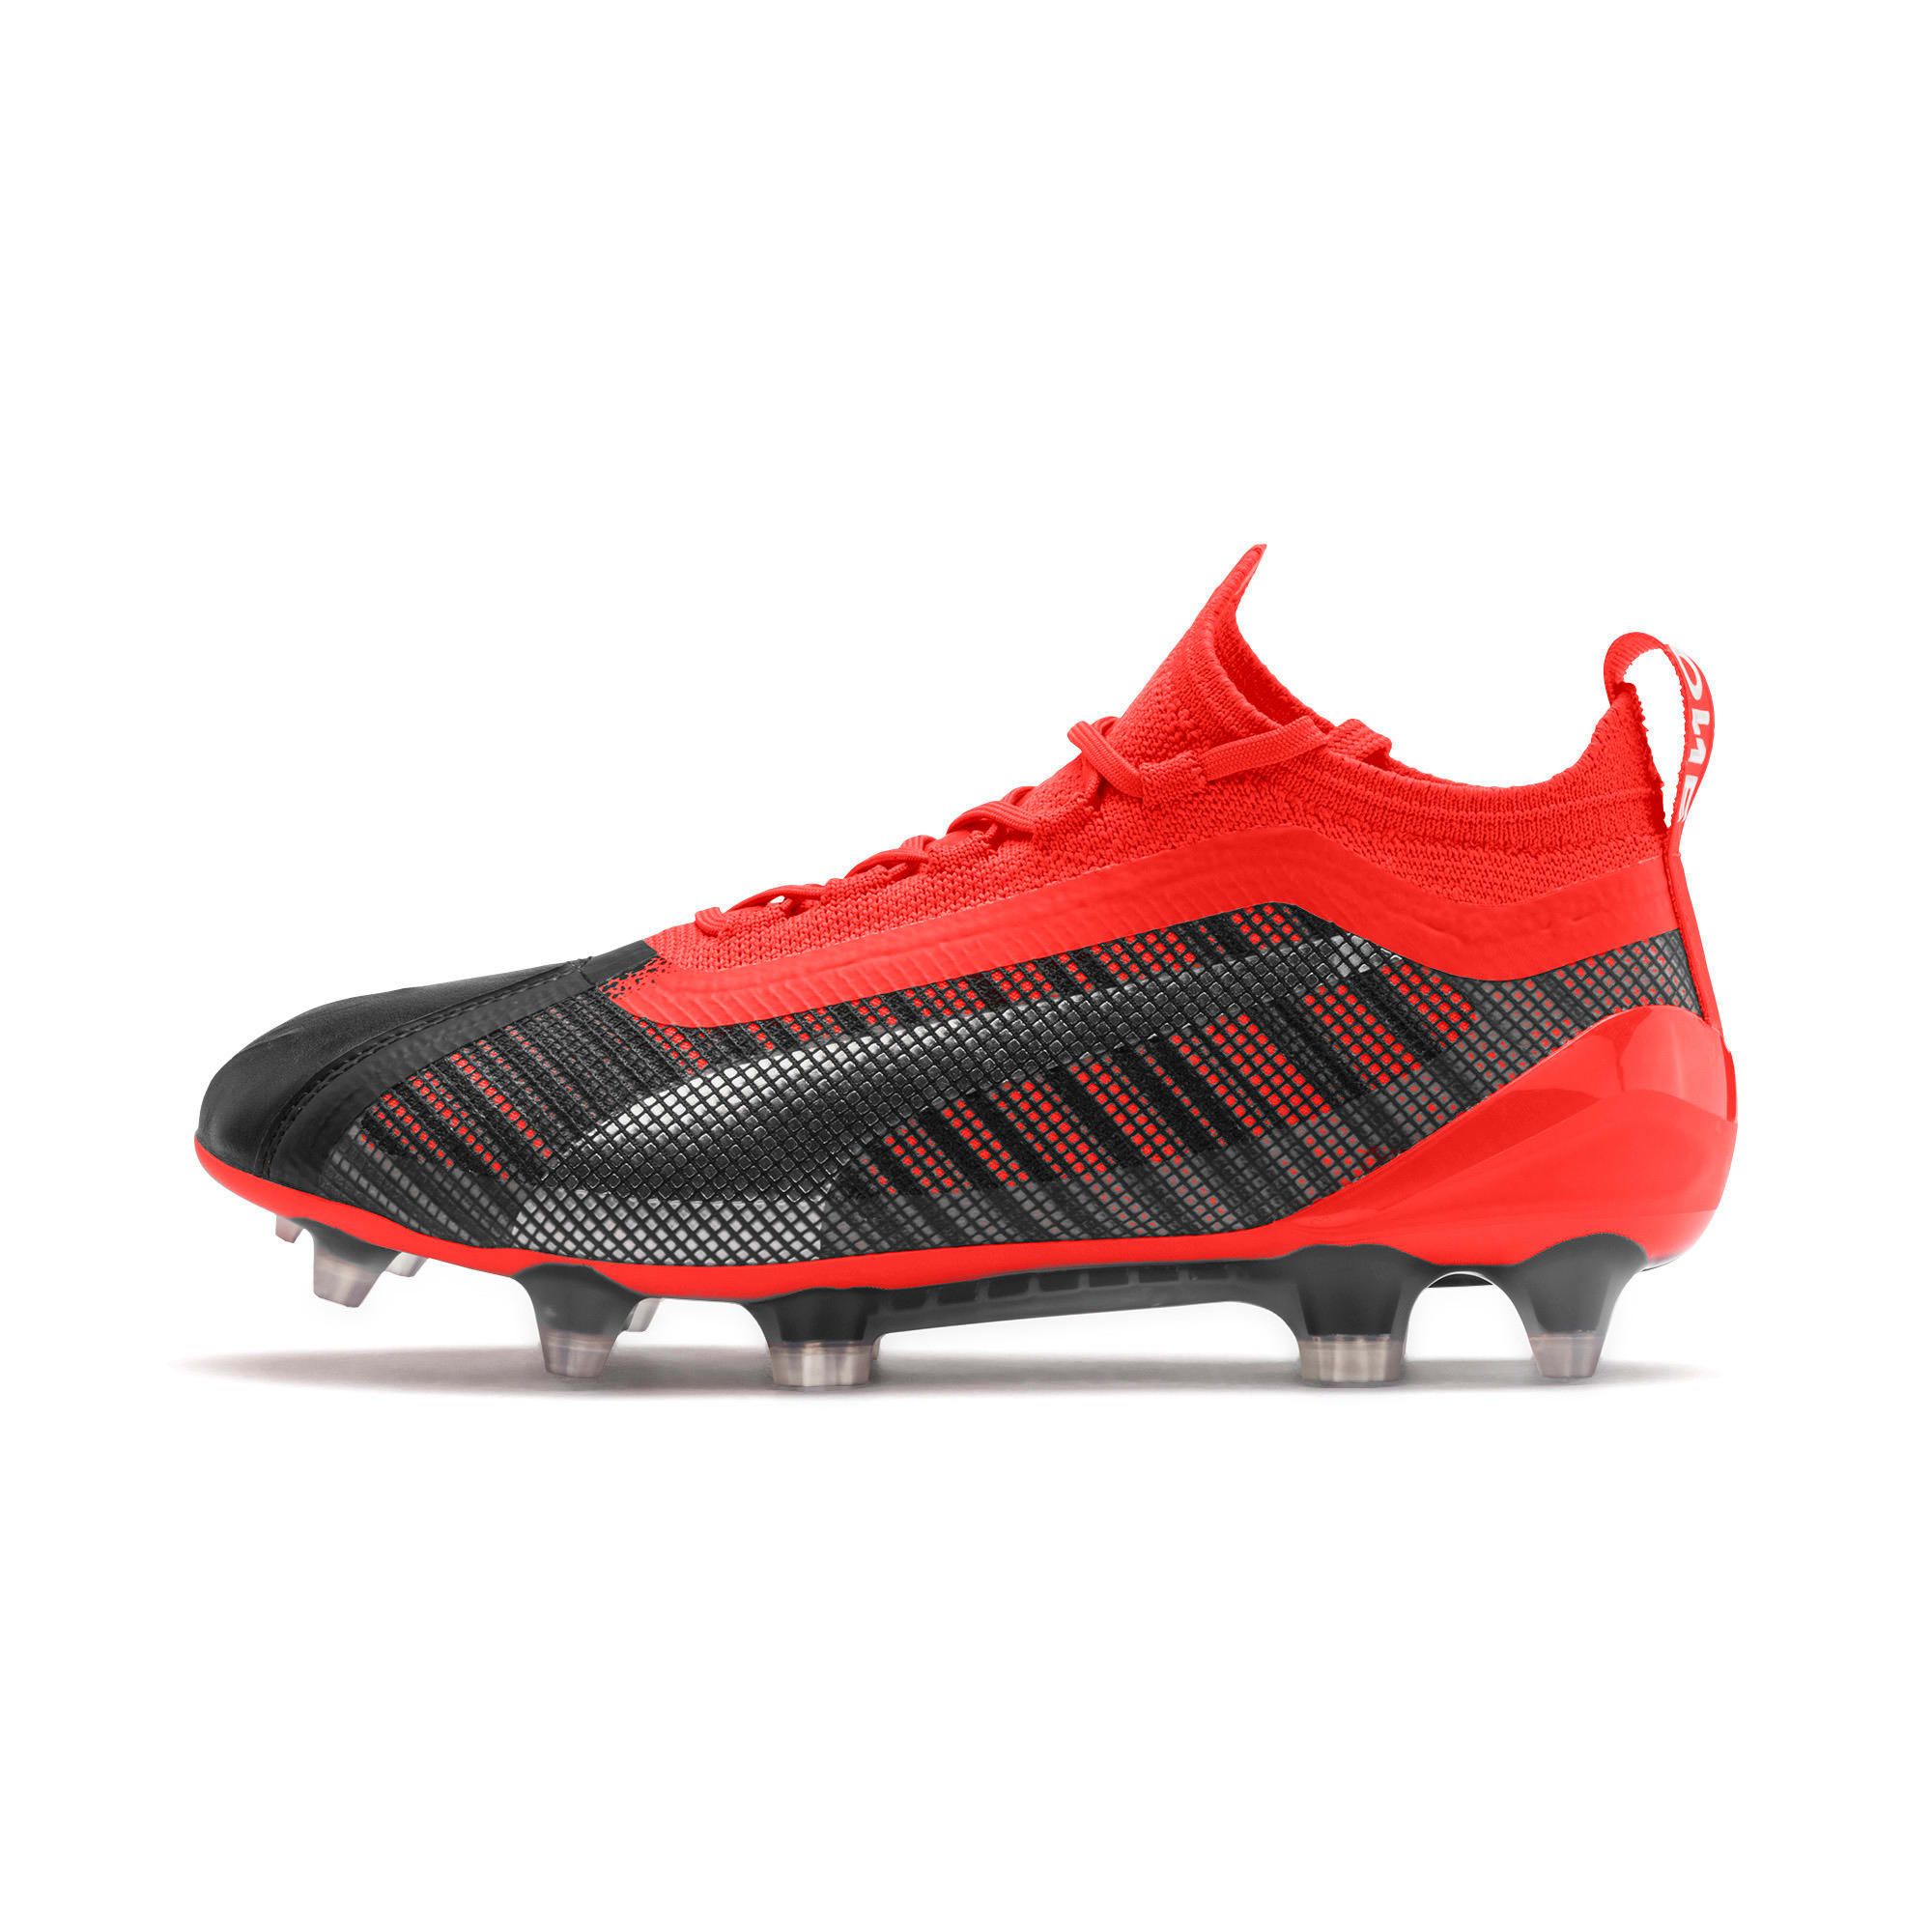 Thumbnail 1 of PUMA ONE 5.1 Youth Football Boots, Black-Nrgy Red-Aged Silver, medium